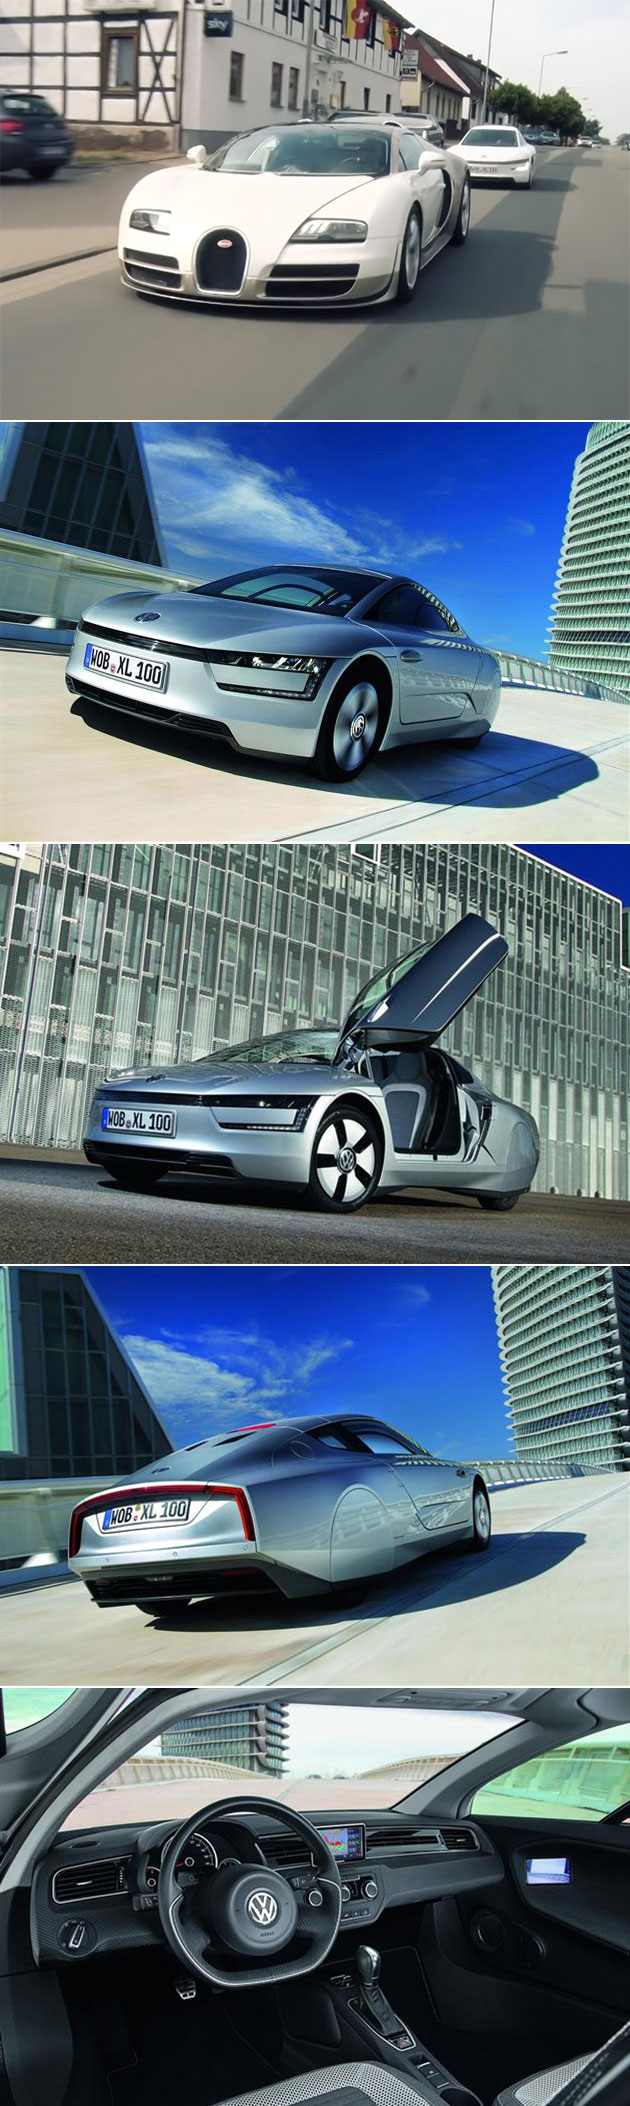 volkswagen xl1 hybrid can achieve 261mpg takes on bugatti veyron in top gear. Black Bedroom Furniture Sets. Home Design Ideas